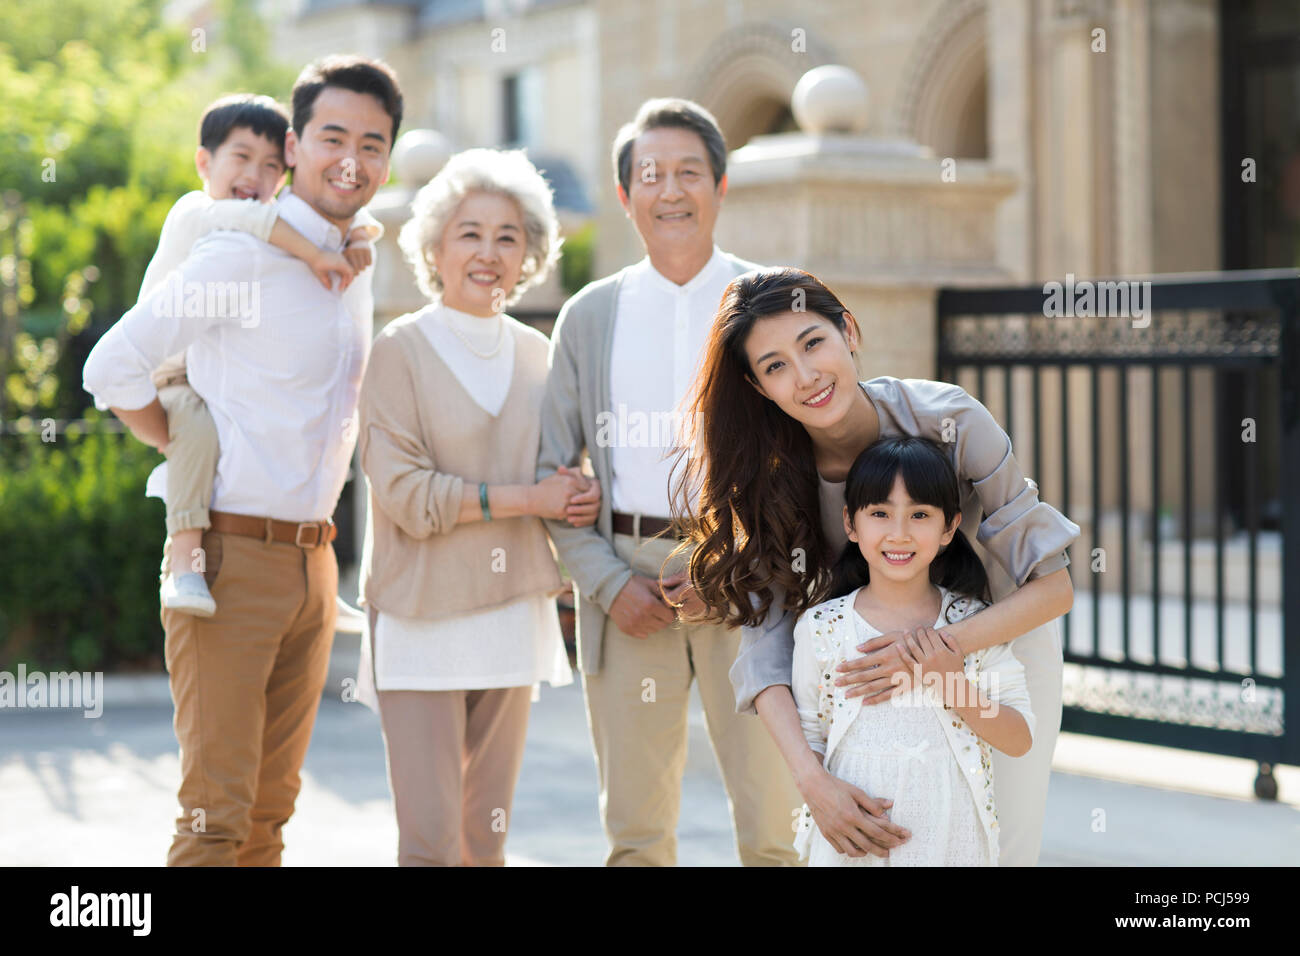 Portrait of happy Chinese family - Stock Image